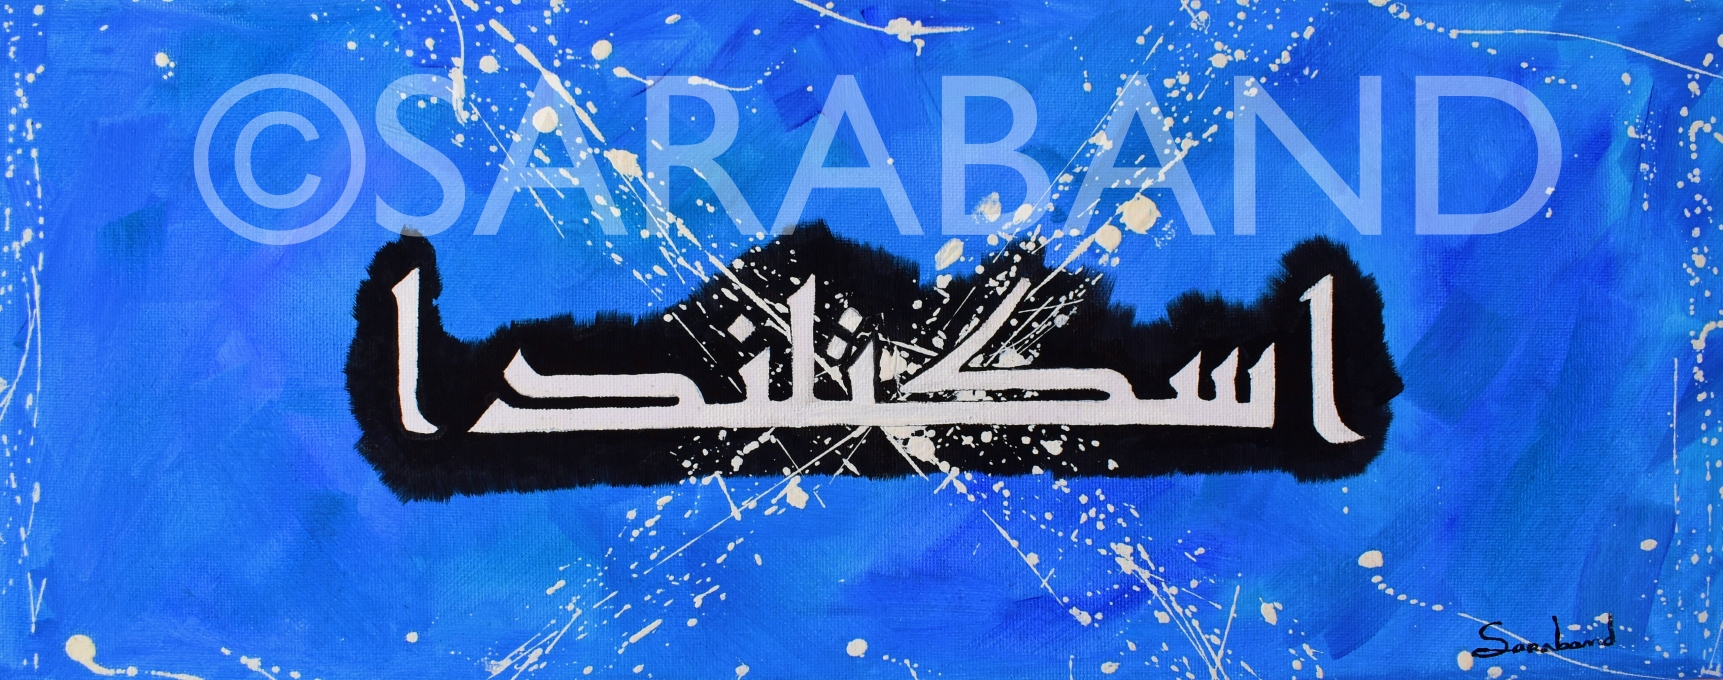 """AS-SKUTLANDA"" (""Scotland"" in Arabic) - 20x50cm, oil on canvas - £250  (ORIGINAL SOLD - BUT PRINTS ARE AVAILABLE)"